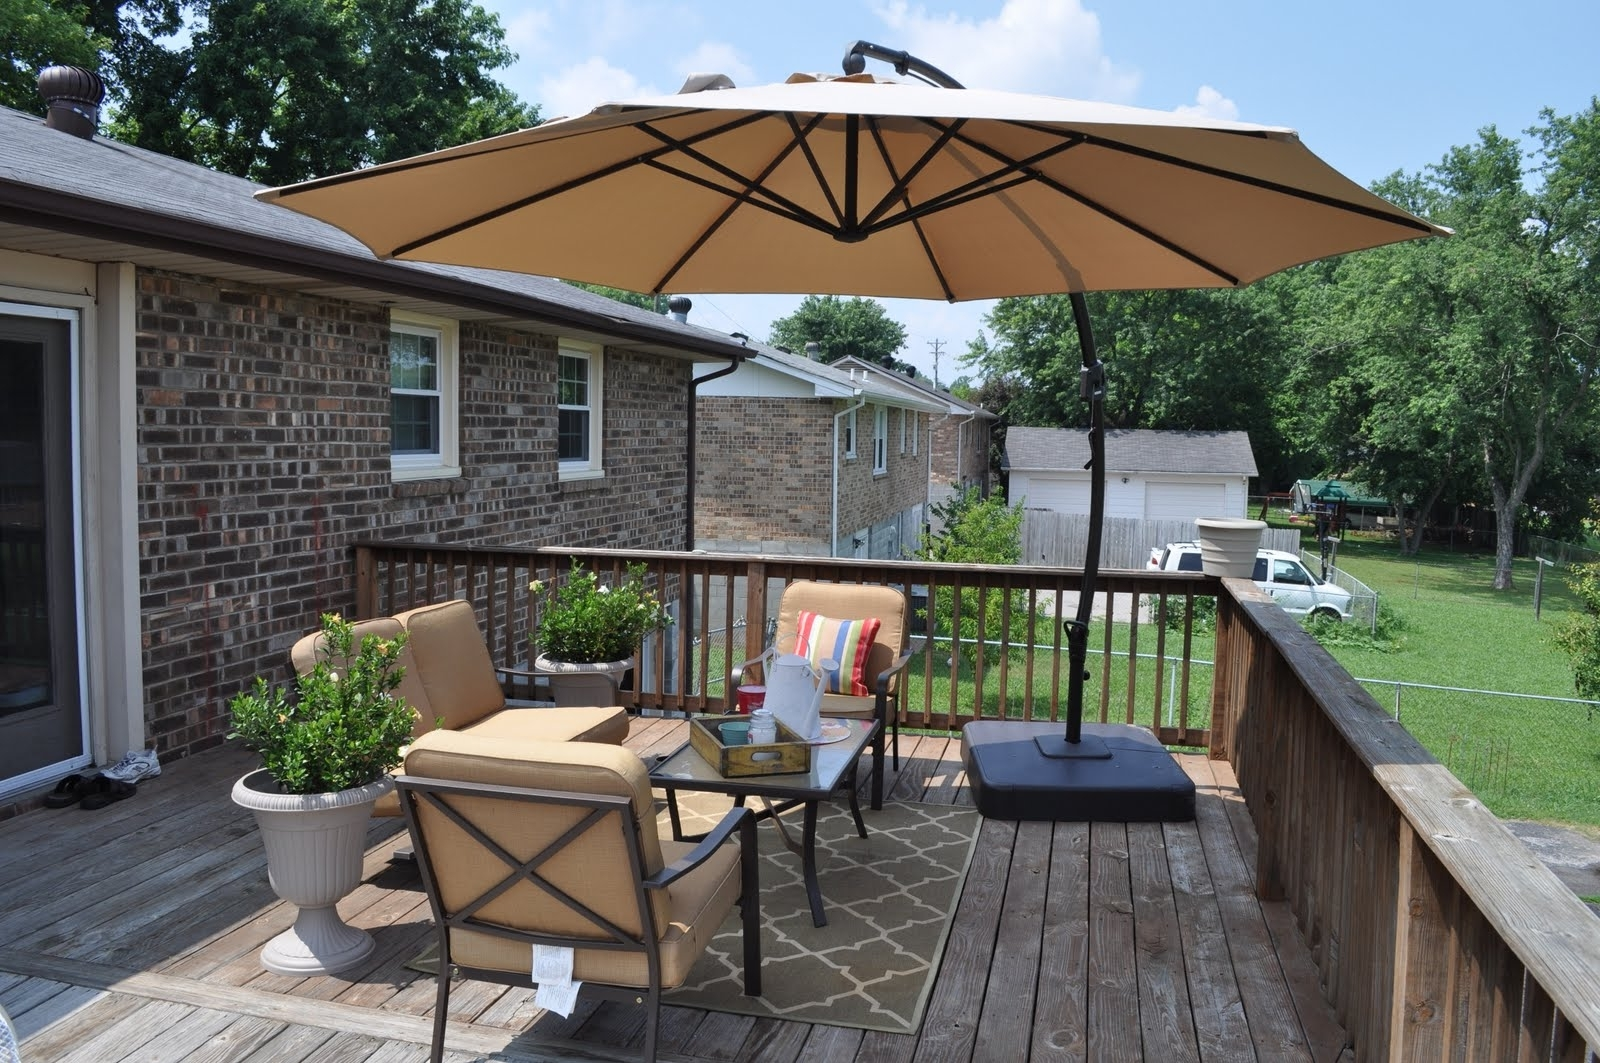 Patio: Awesome Umbrella Patio Set Frontgate Outdoor Furniture Regarding Well Known Patio Dining Umbrellas (View 17 of 20)